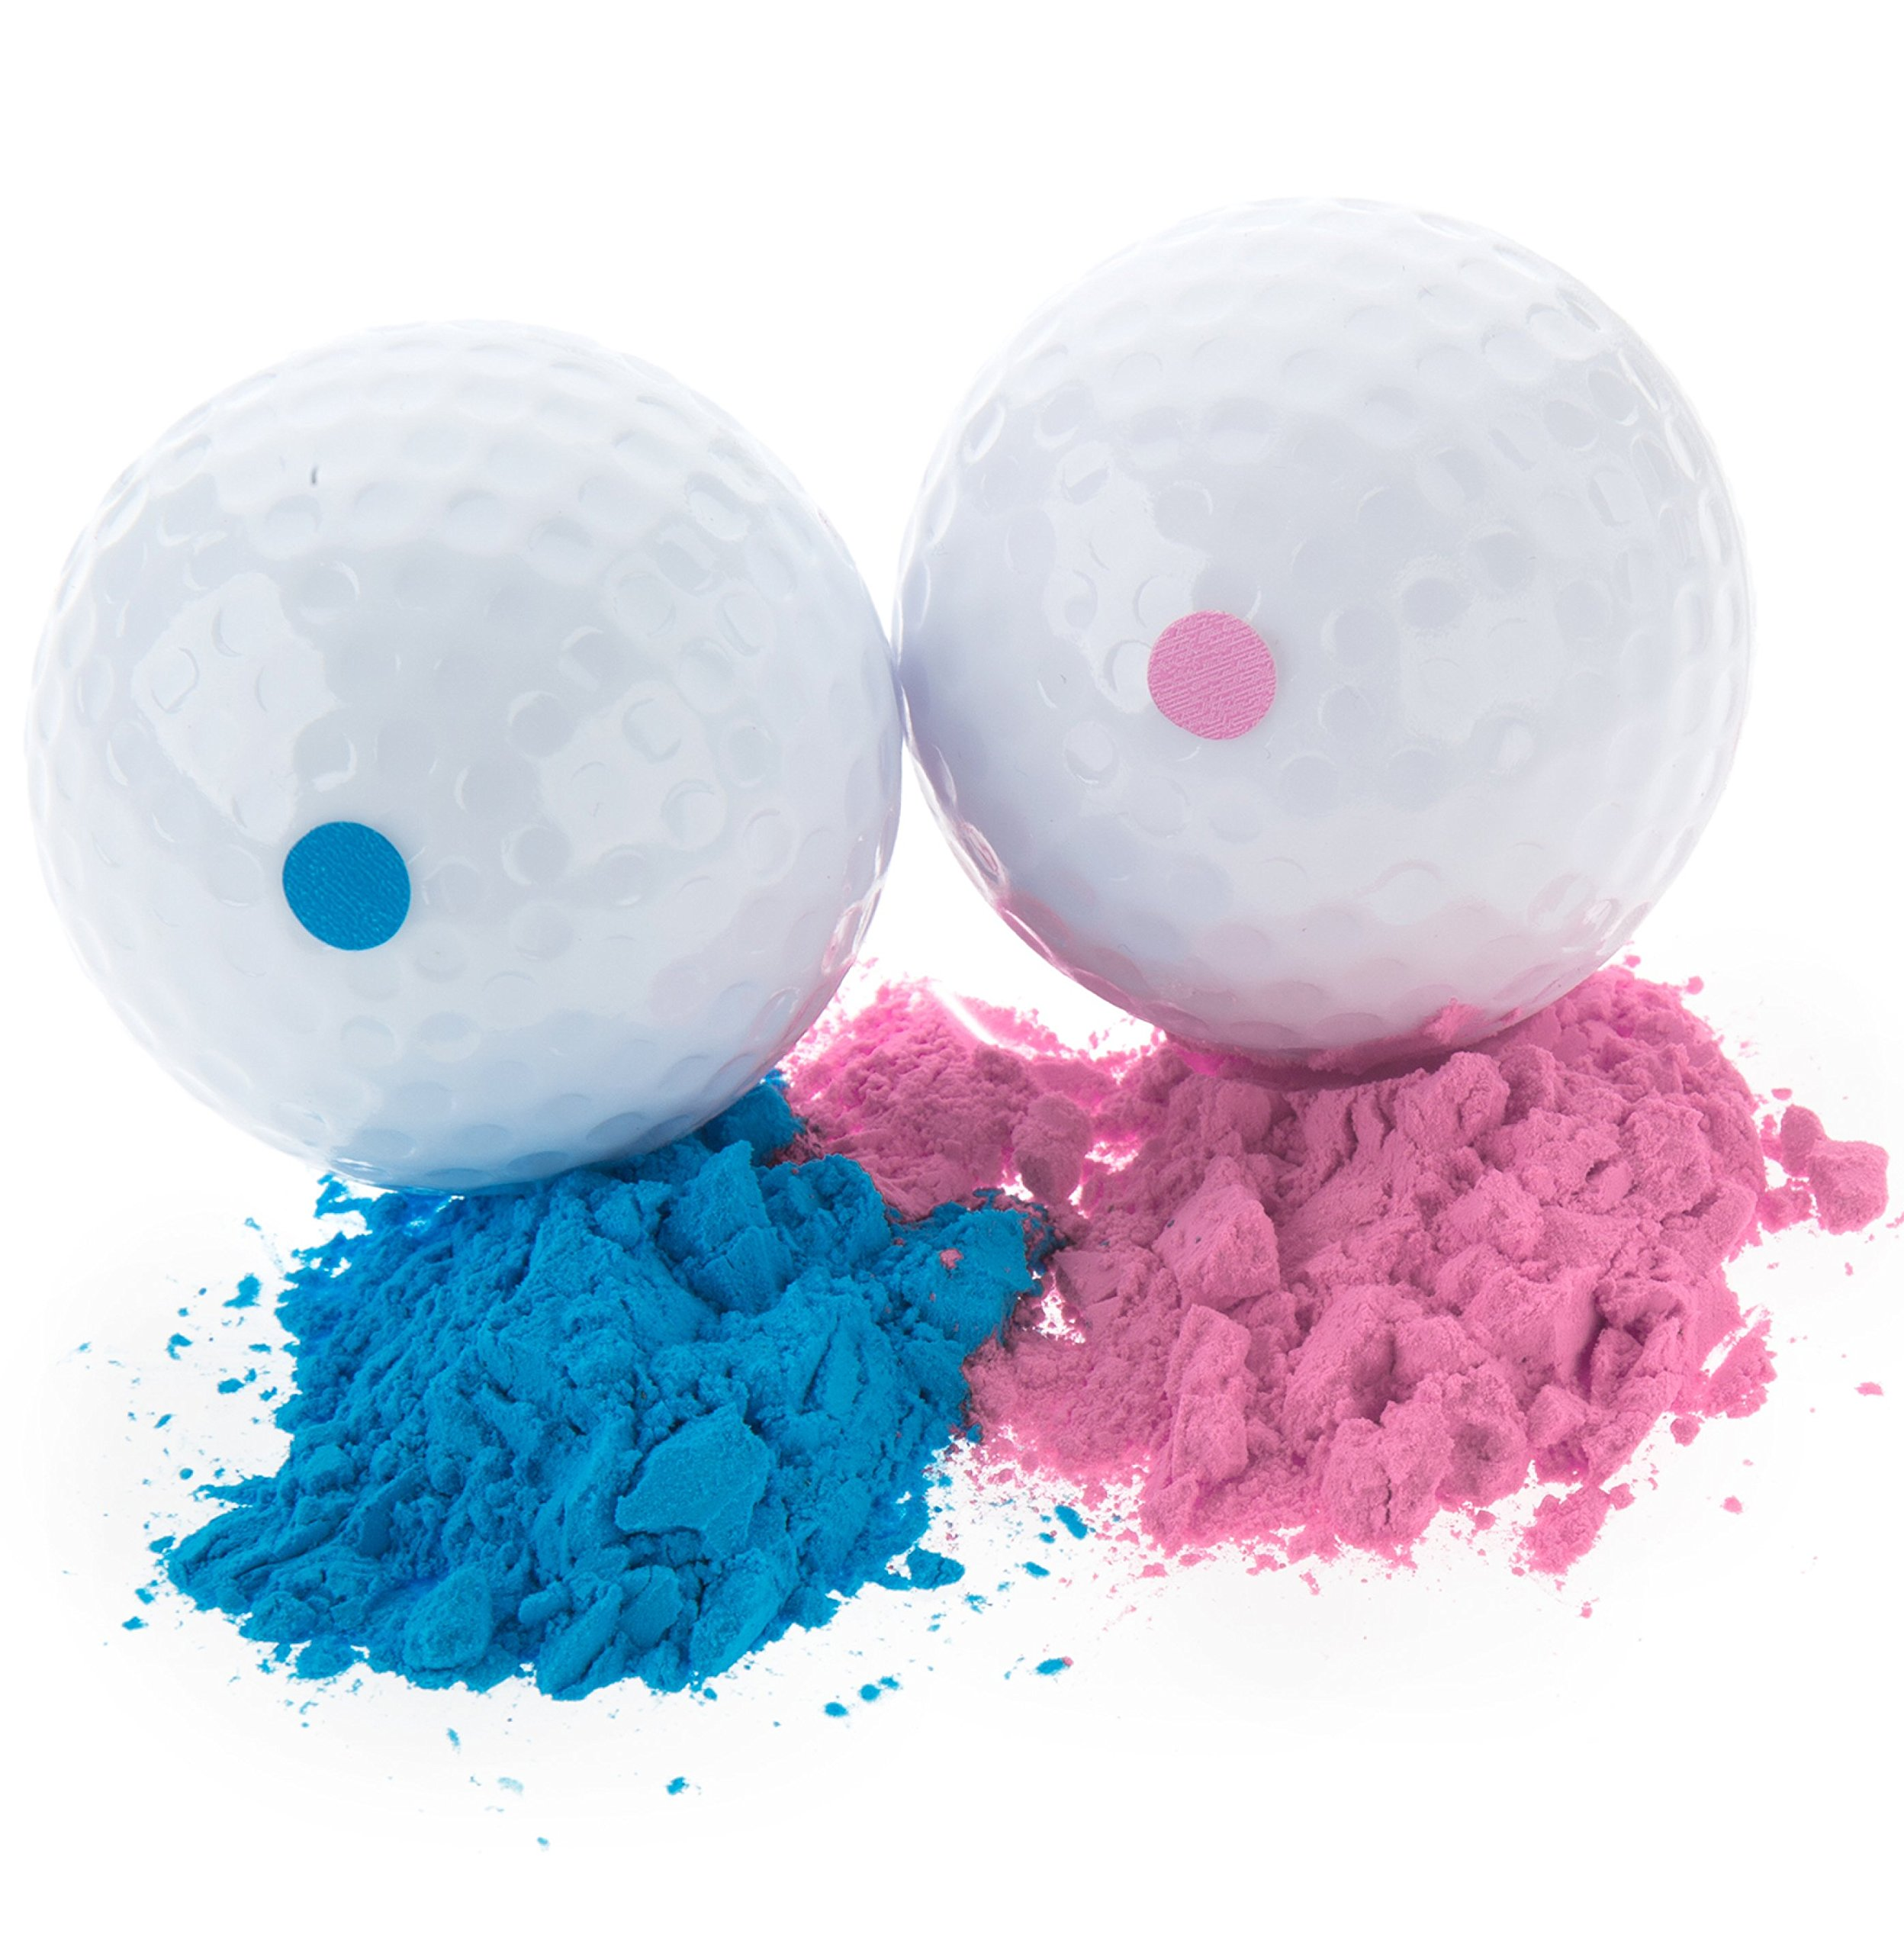 Baby Gender Reveal Exploding Golf Balls - Pink and Blue Set for Boy or Girl Sex Reveal Party (1 Pink Ball and 1 Blue Ball)